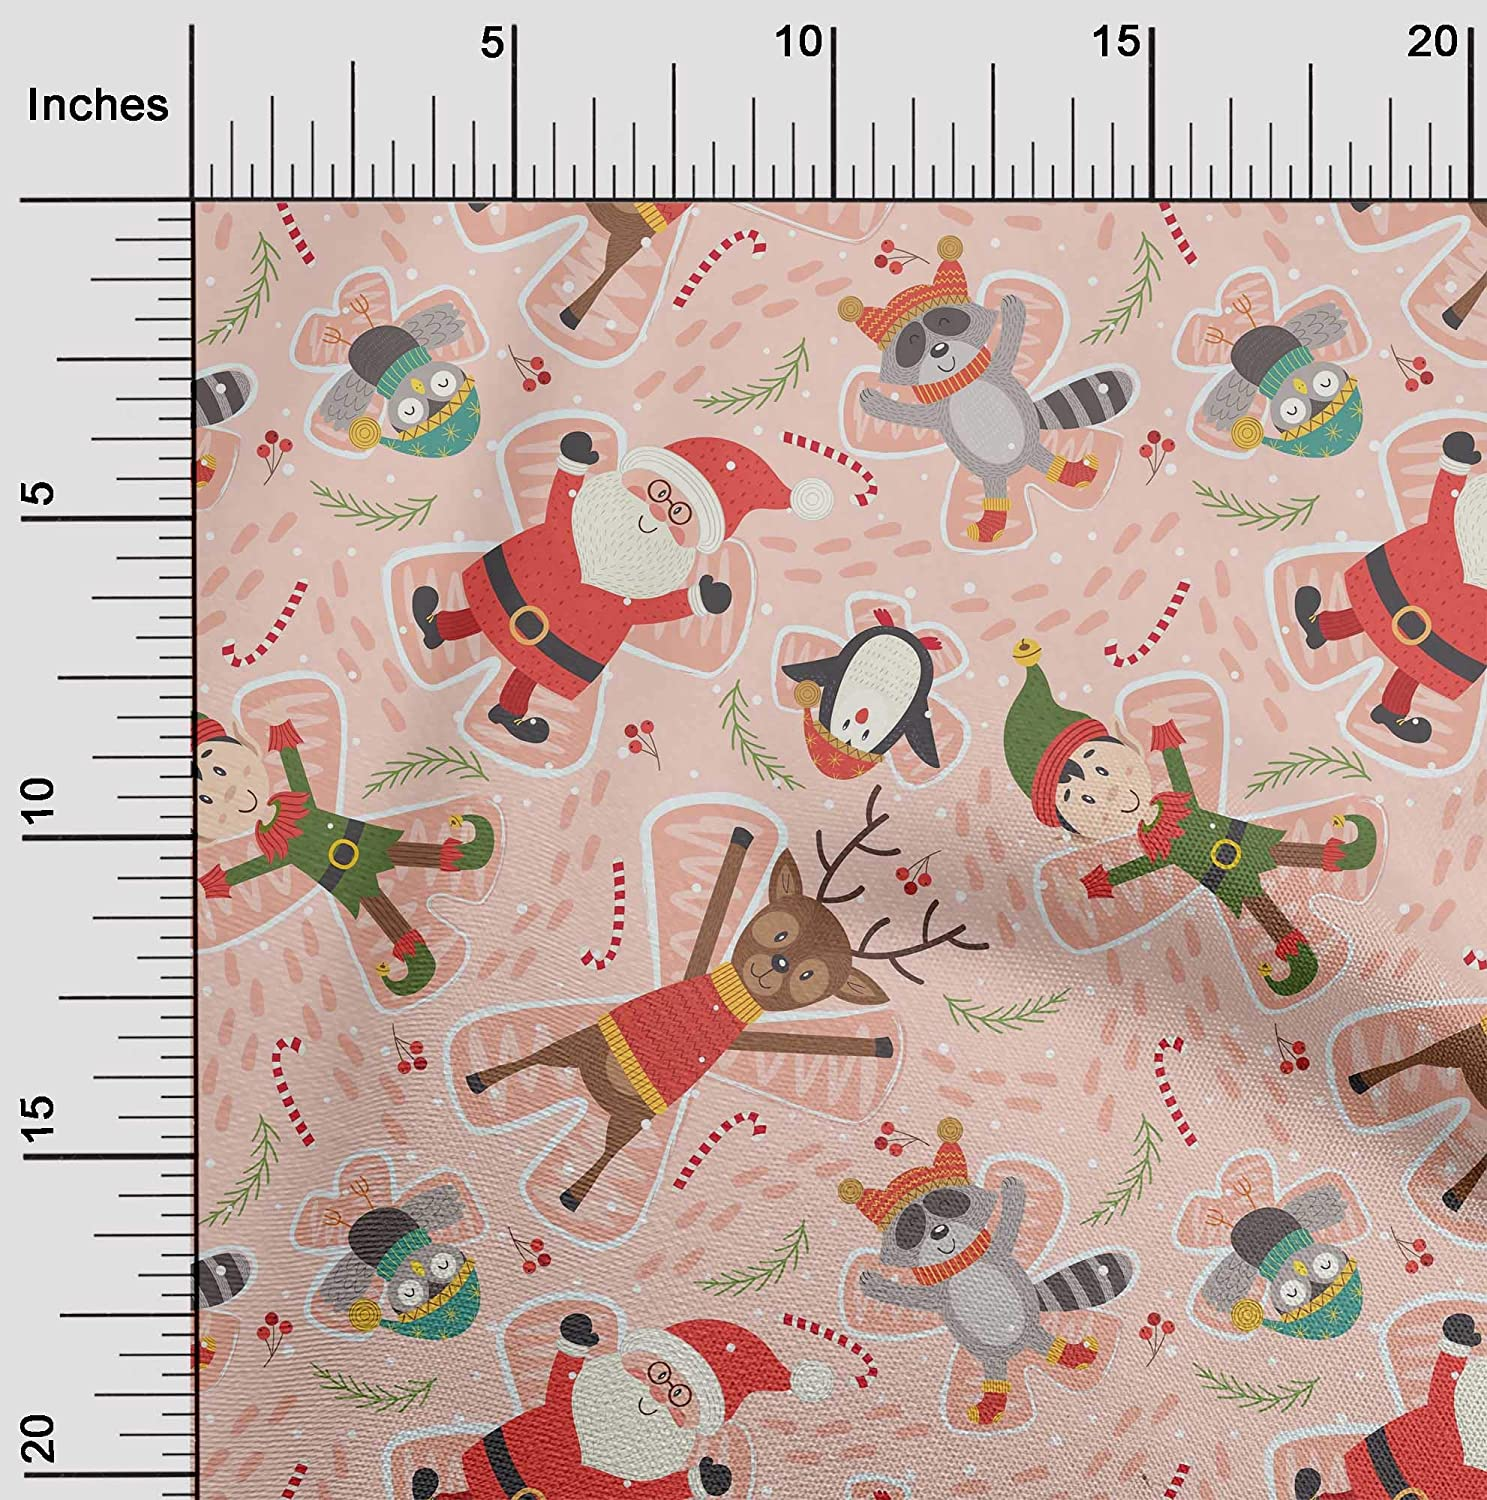 oneOone Cotton Poplin Light Peach Fabric Cartoon Animal,Candy Stick & Santa Christmas Fabric for Sewing Printed Craft Fabric by The Yard 56 Inch Wide